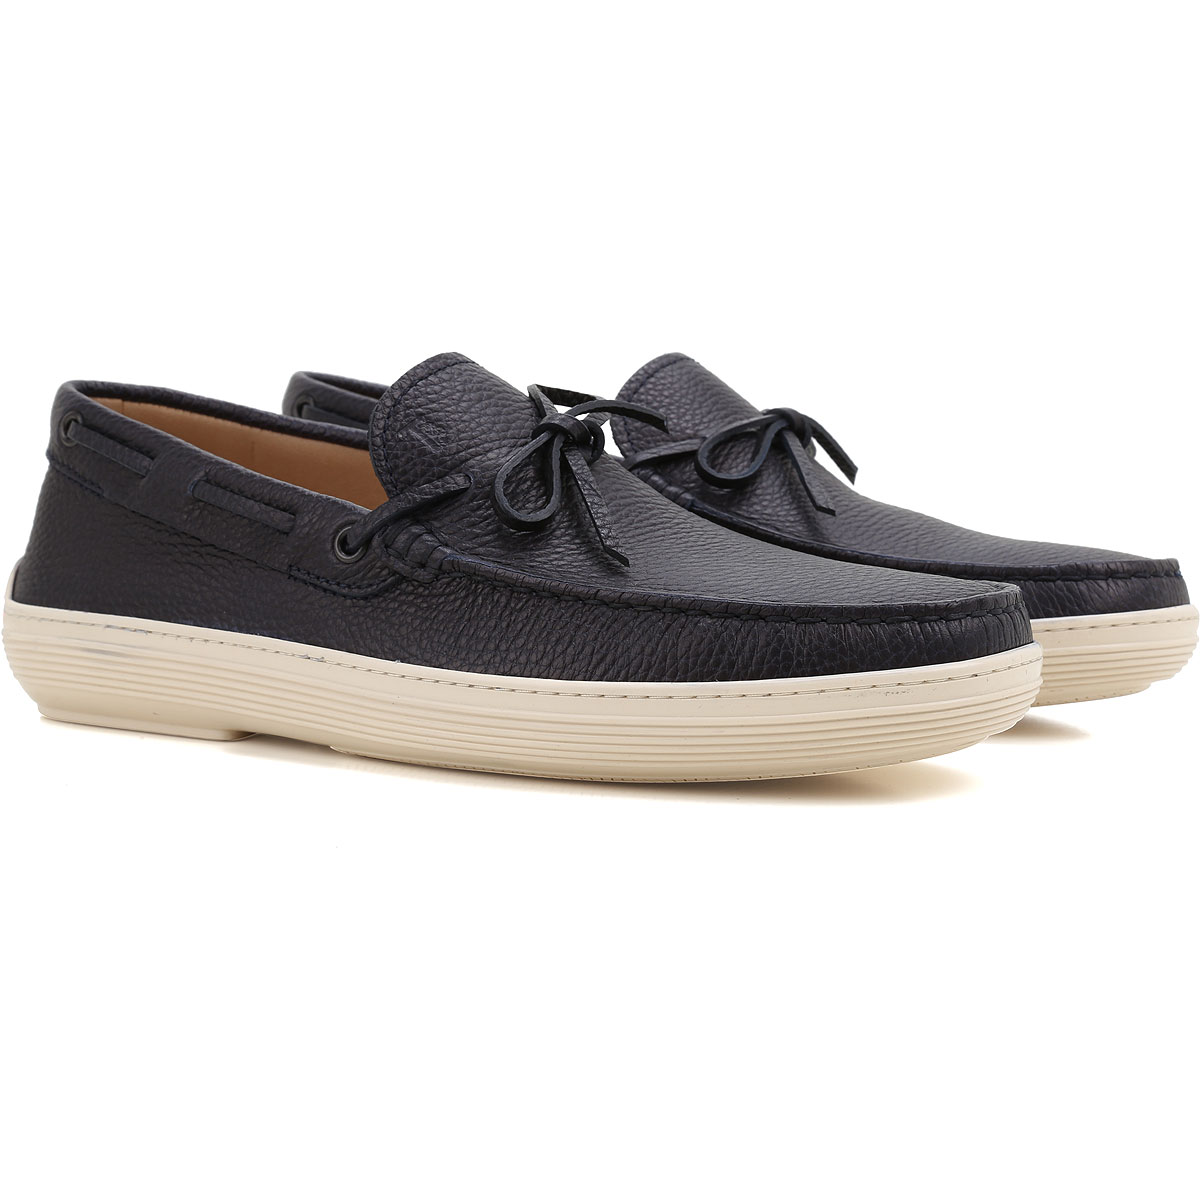 Image of Tods Boat Shoes for Men, Deck Shoes On Sale, Dark Navy Blue, Leather, 2017, 10 7 8